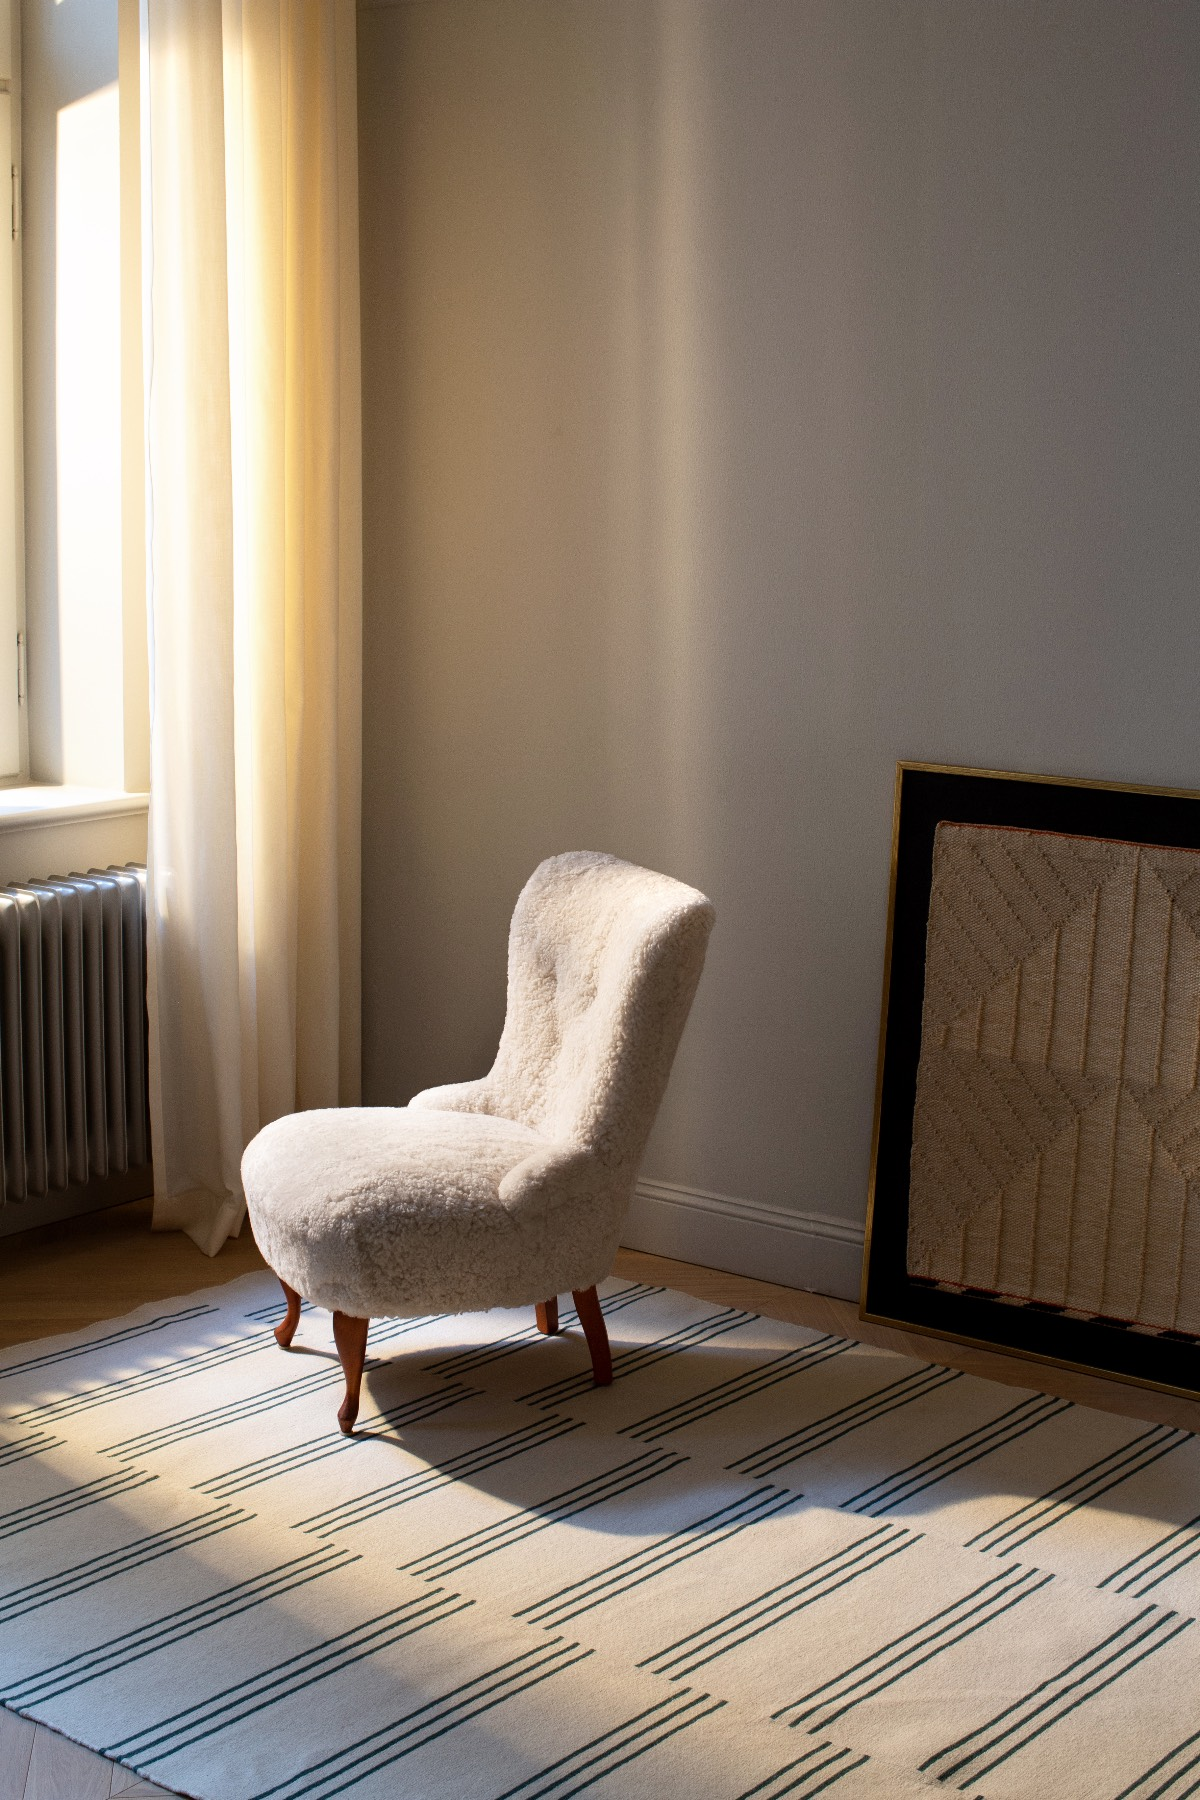 A green Stripes is laying in a sunny room with a white sheep fur armchair.